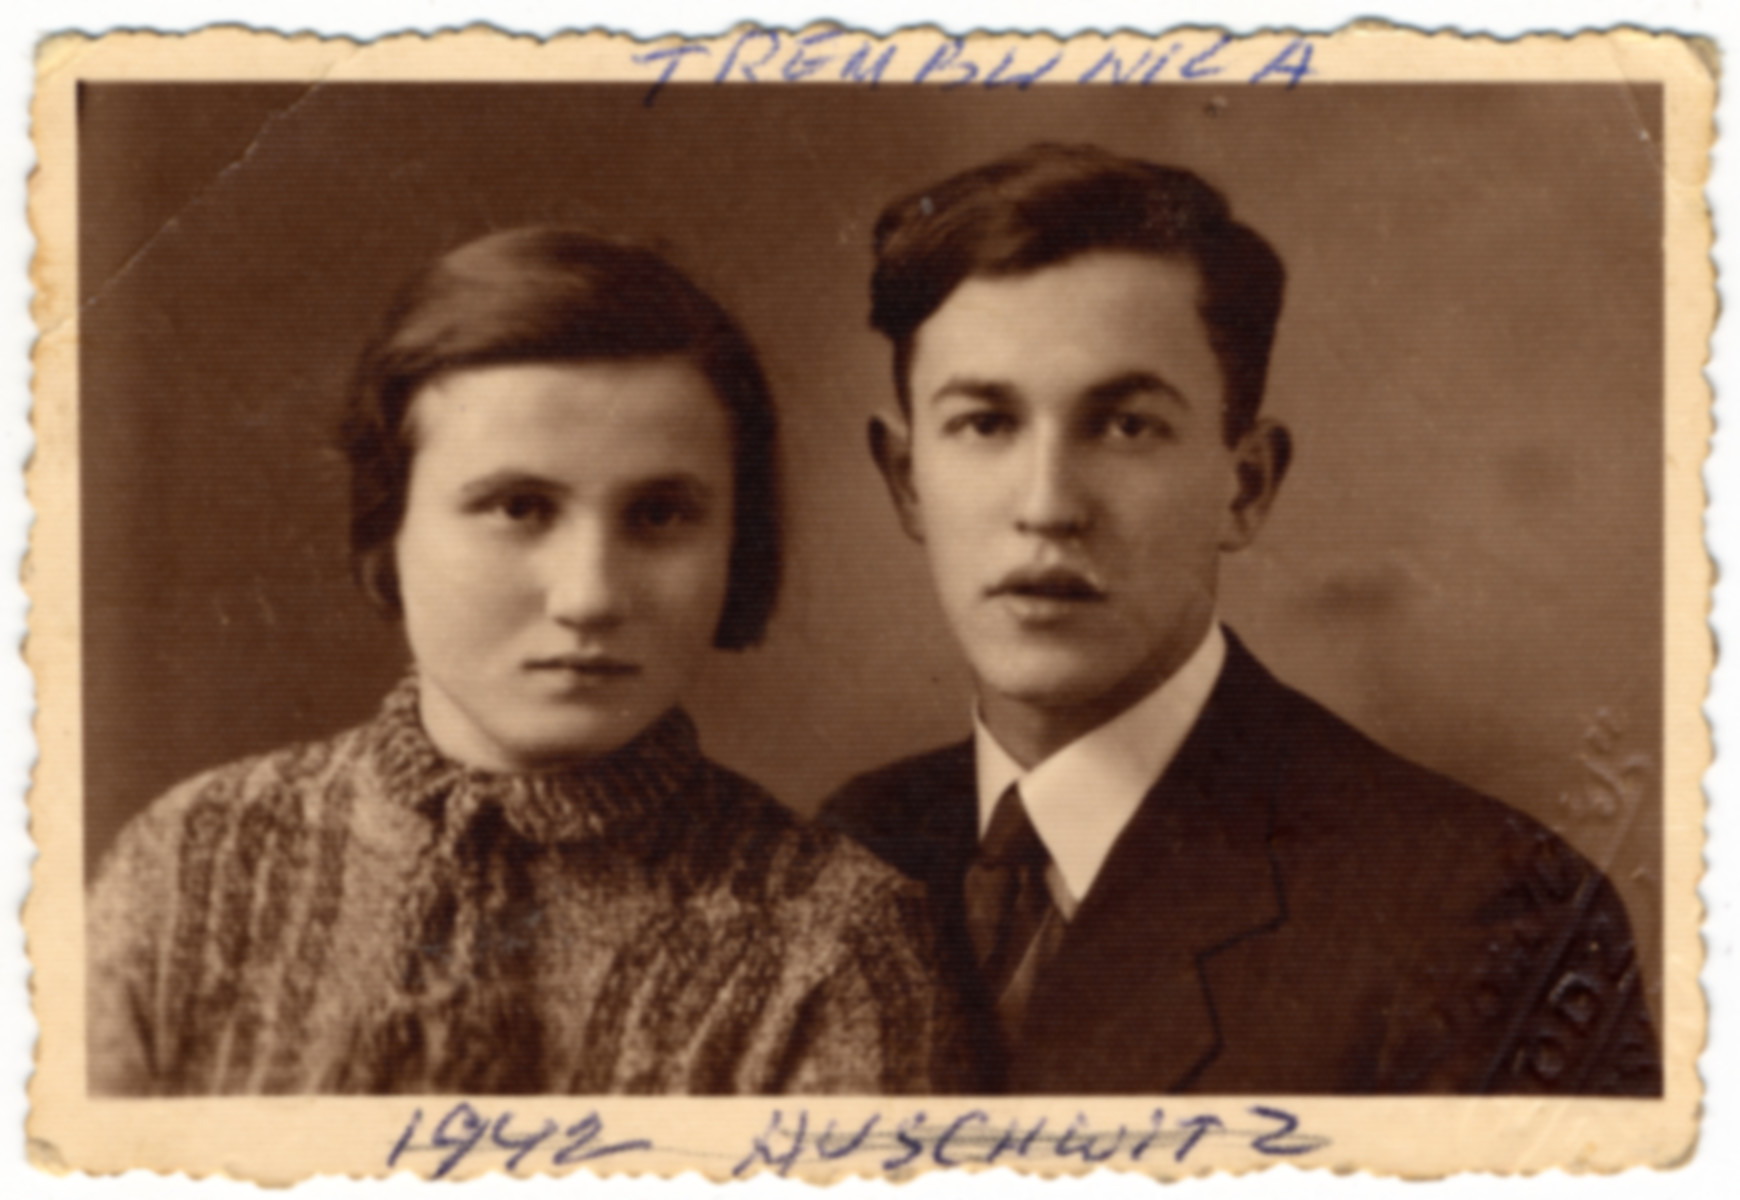 Studio portrait of a young Polish-Jewish couple.  Jadja Samszul is on the left.  She was born in 1920 and killed in Treblinka at the age of 22.